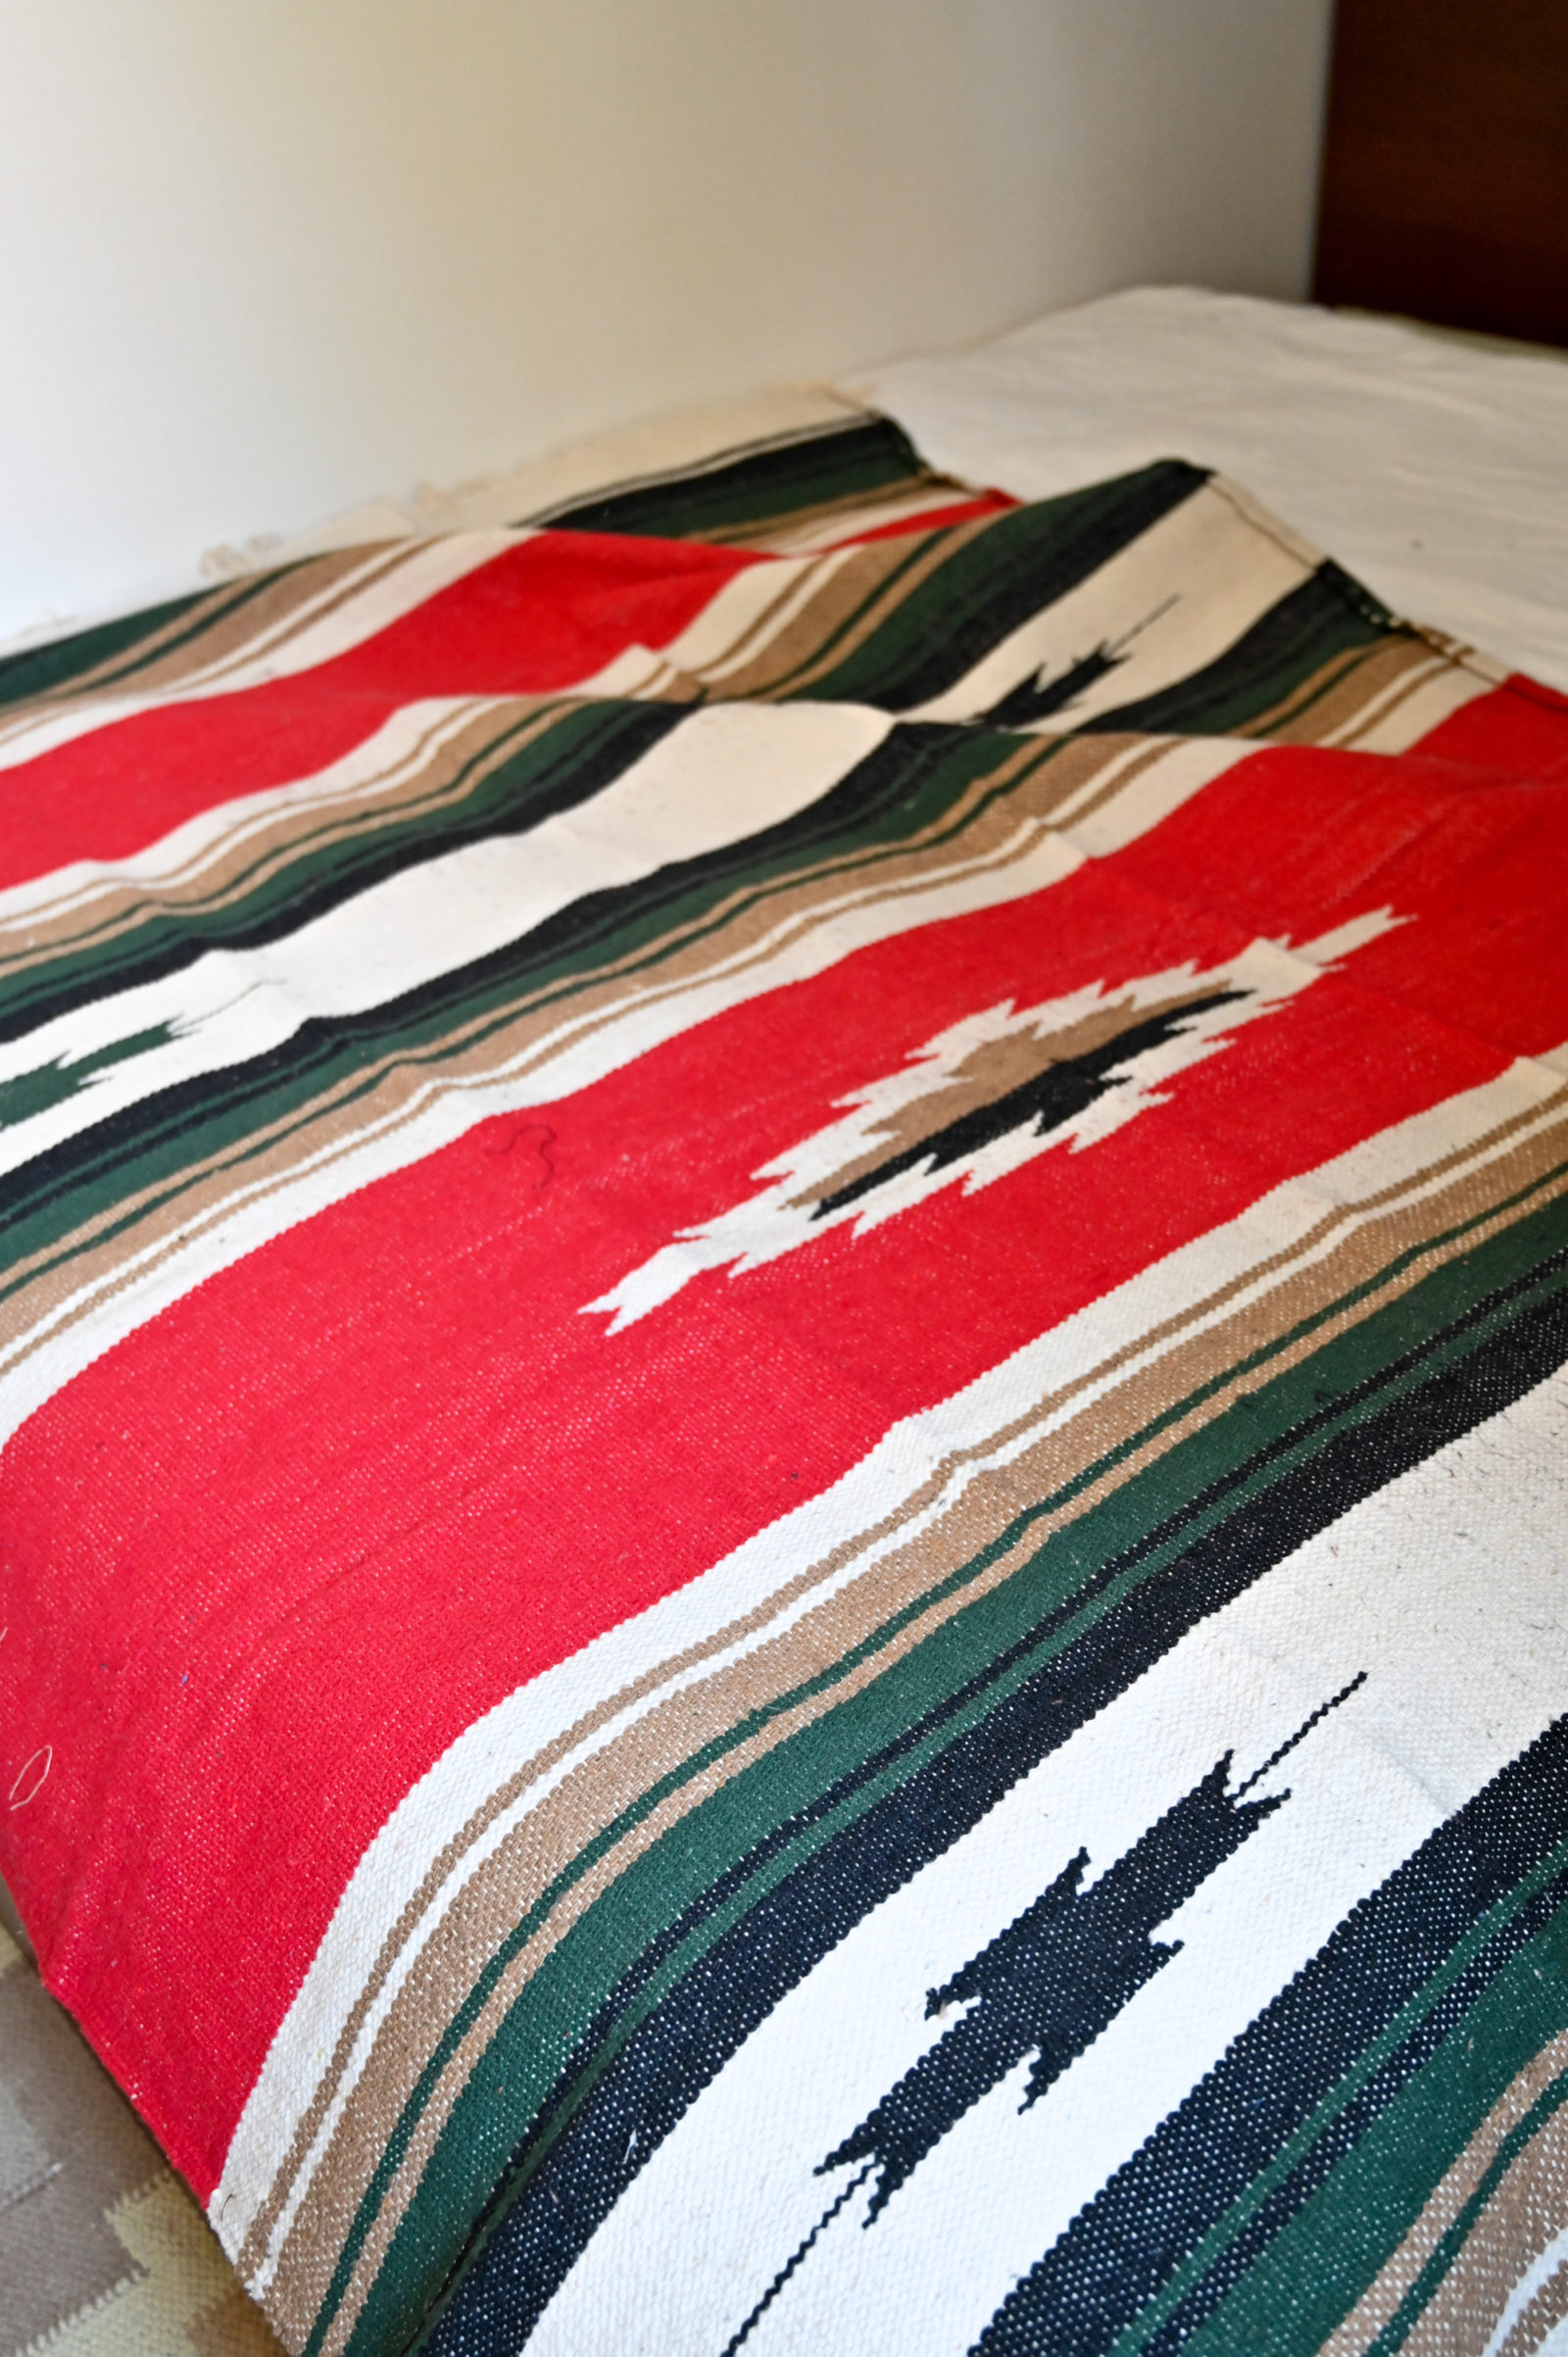 iron resin calle navy couverture mexicaine serape prix acheter